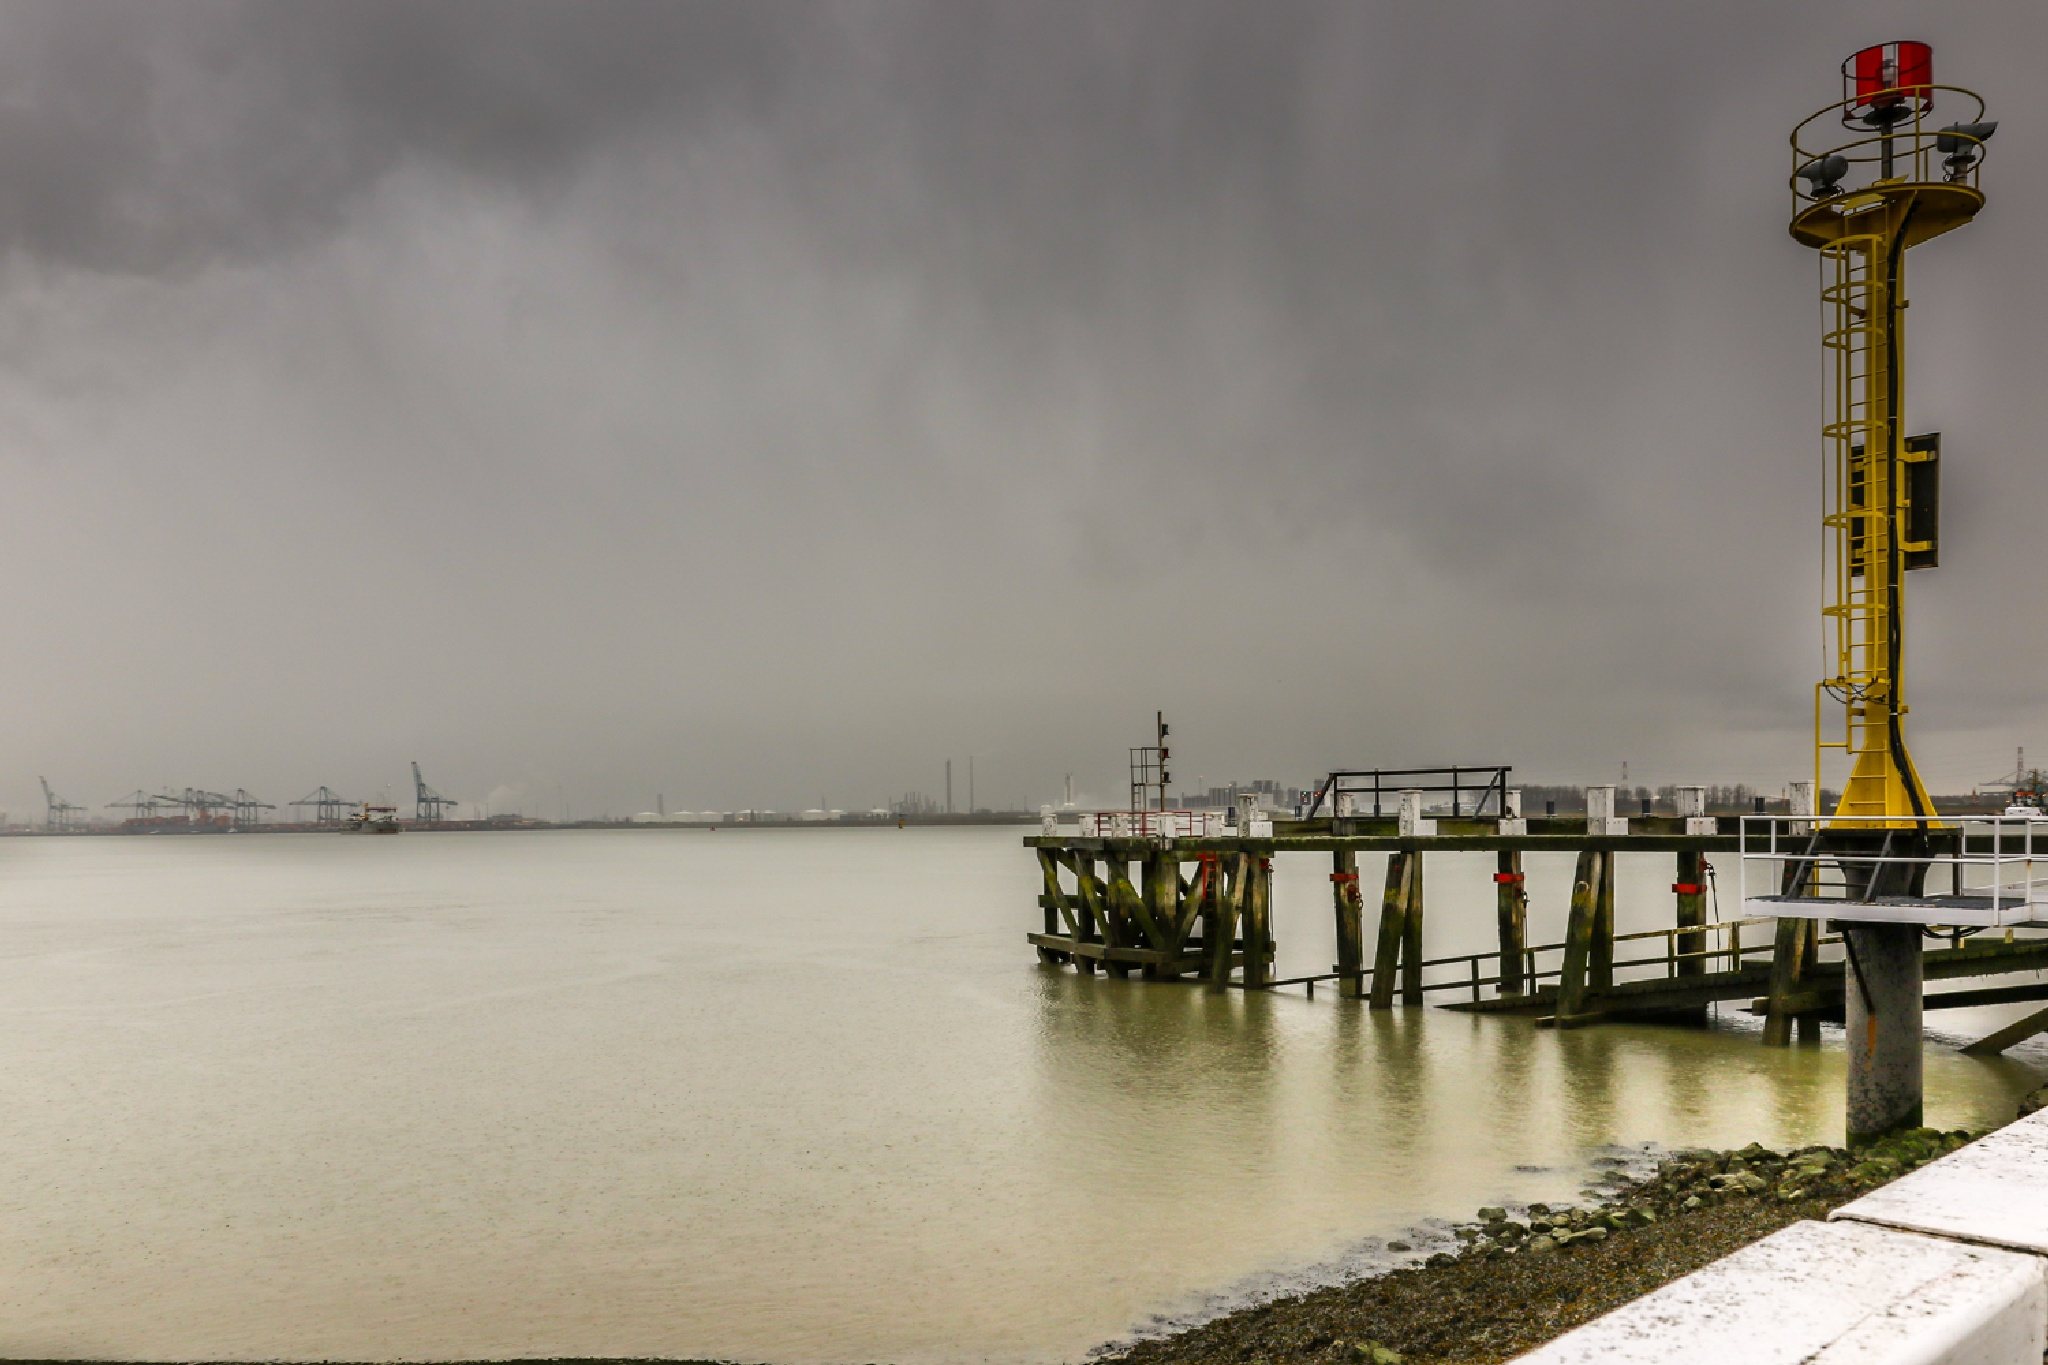 port of Antwerp on the background by Ronny Andries